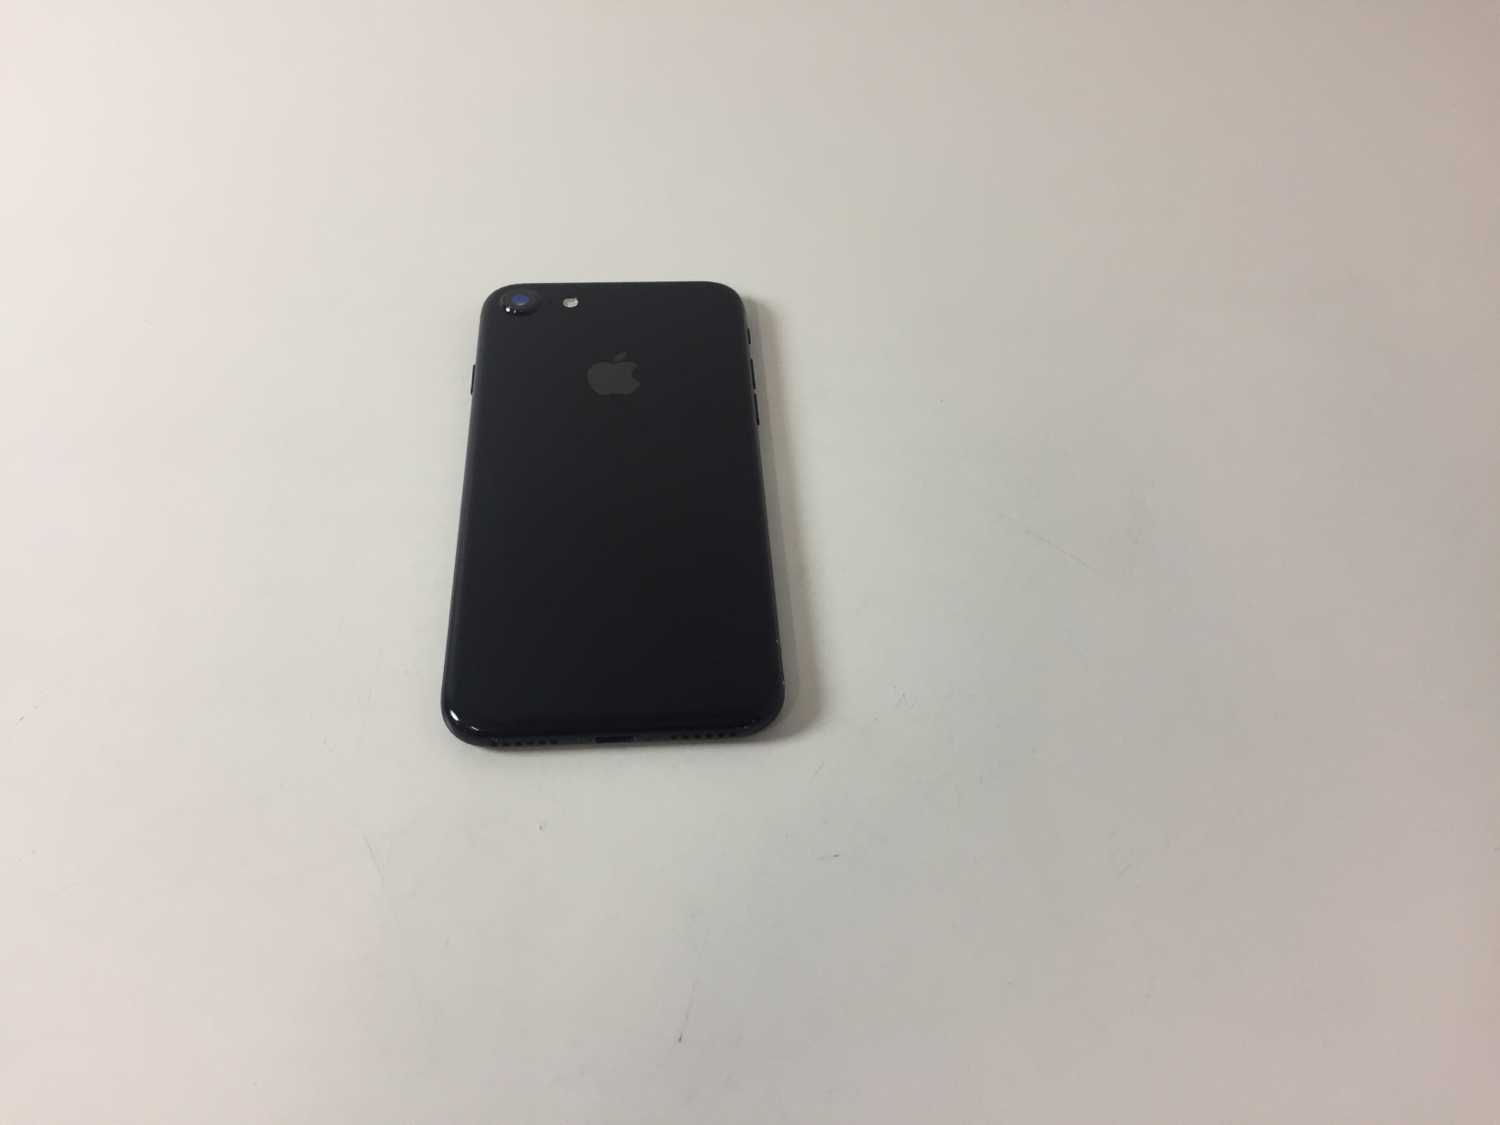 iPhone 7 128GB, 128GB, Jet Black, bild 1